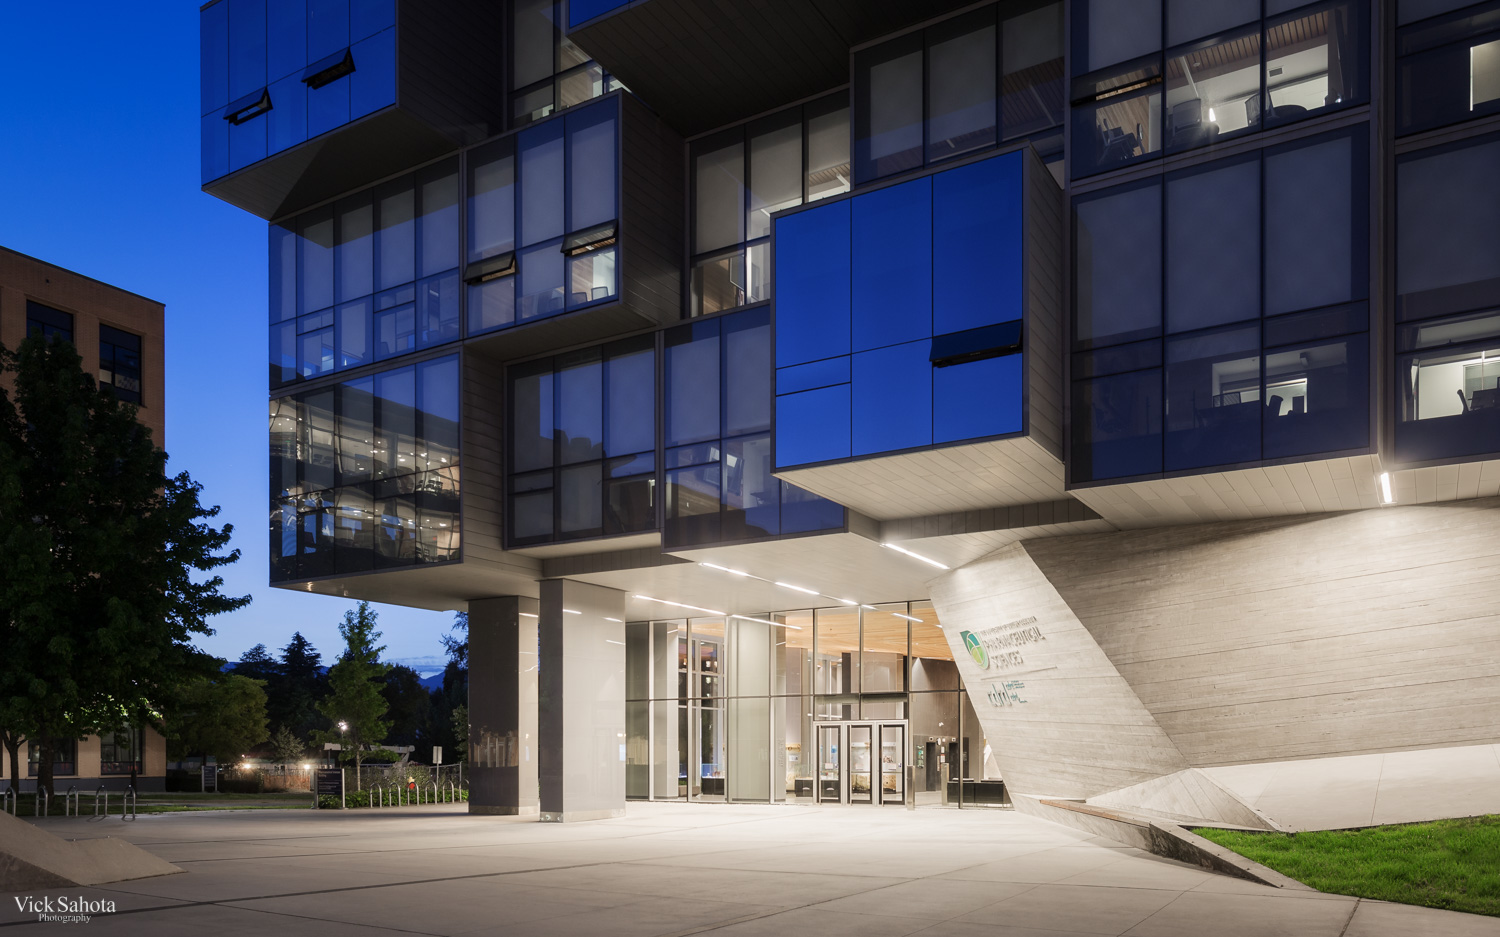 UBC Pharmaceutical Sciences Building